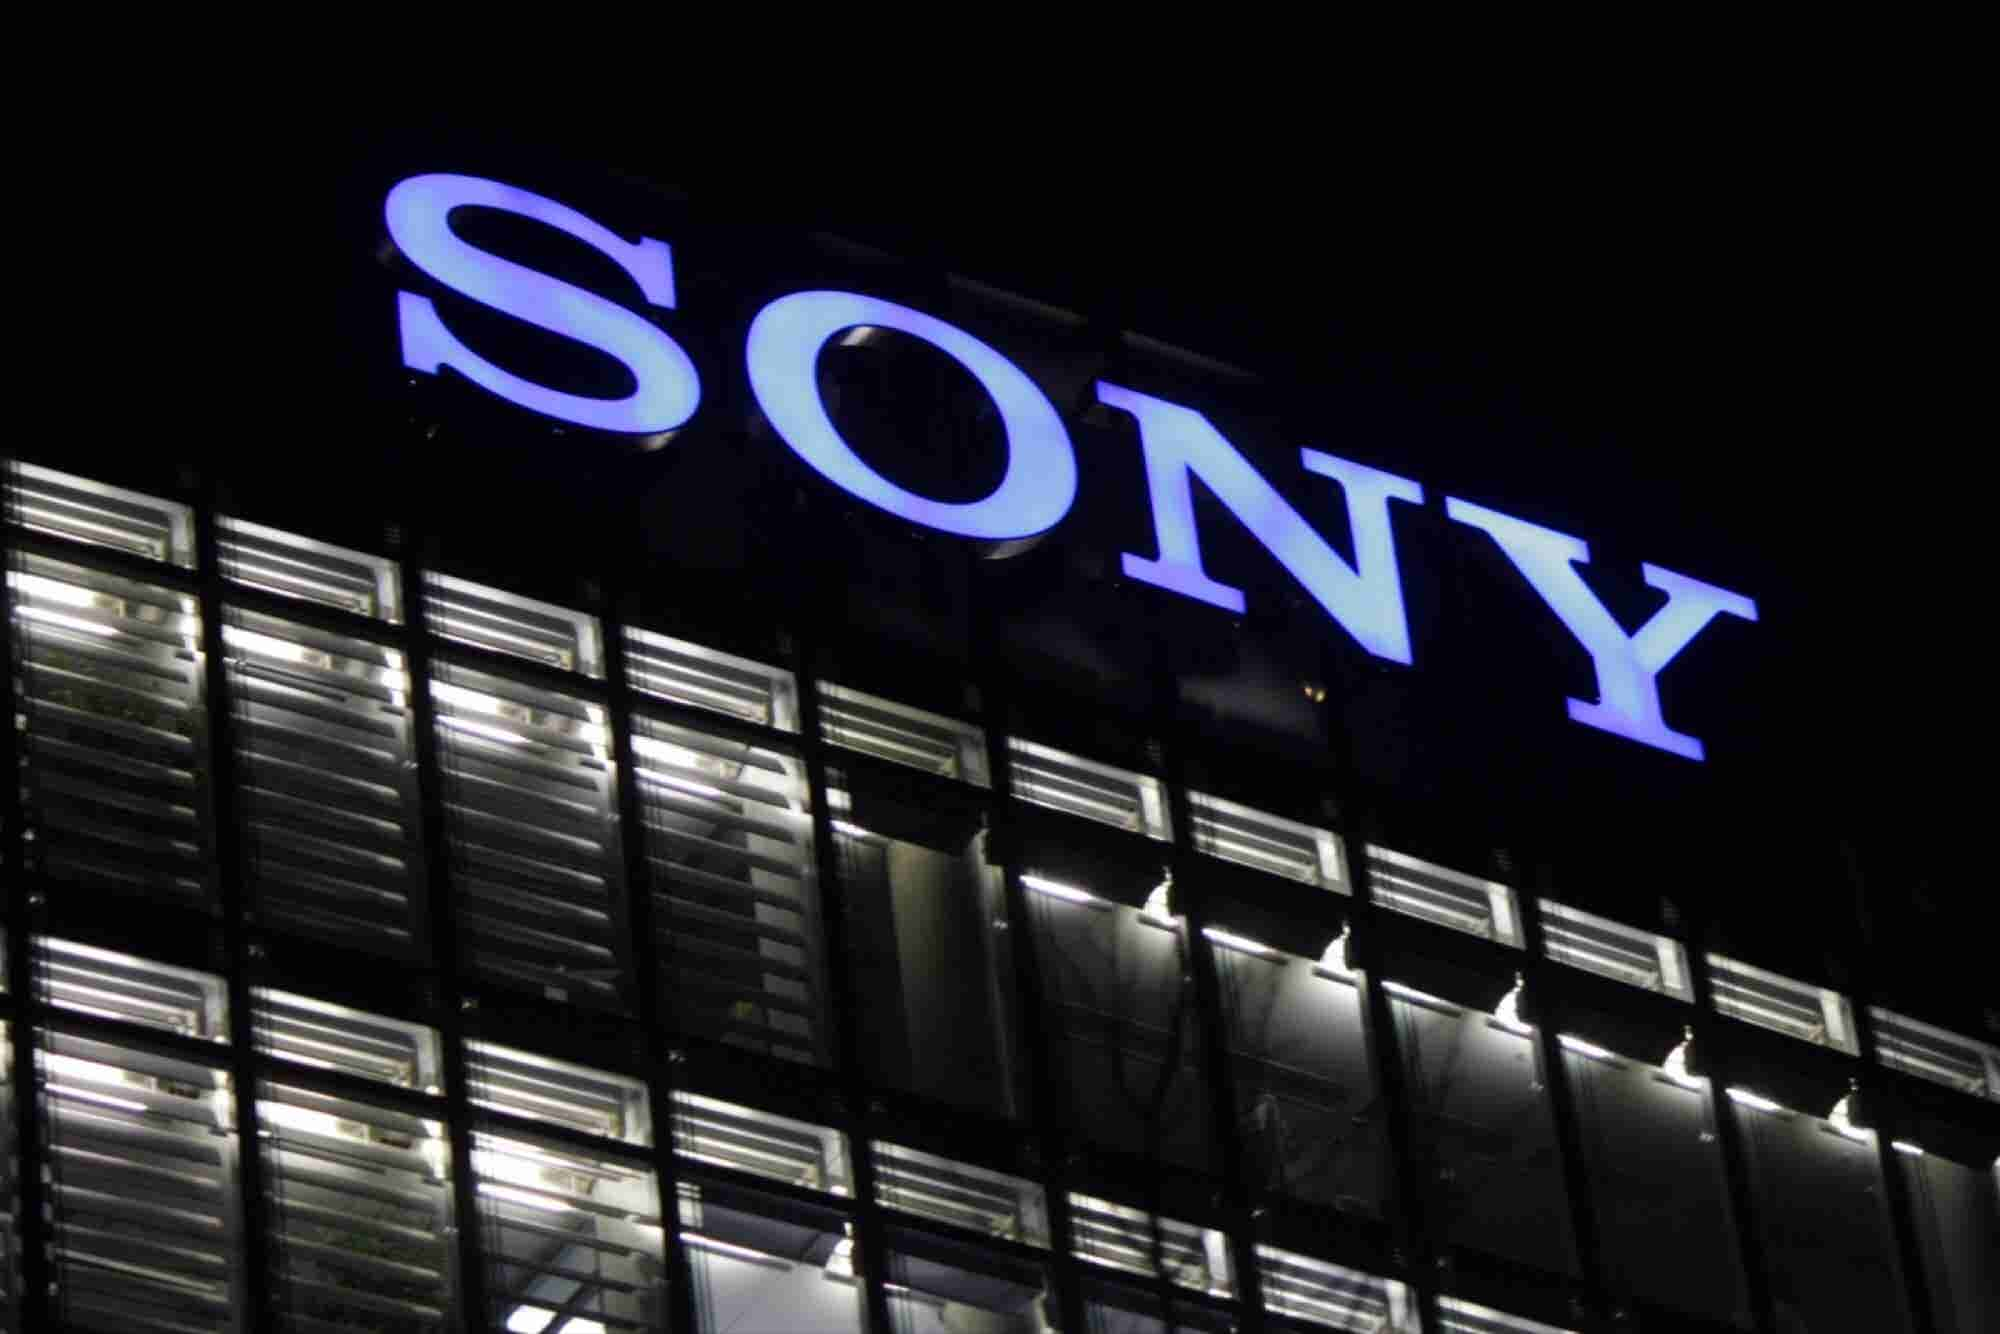 Sony Invests In U.S. Startup in Bid to Build Up AI as a Key Business Pillar